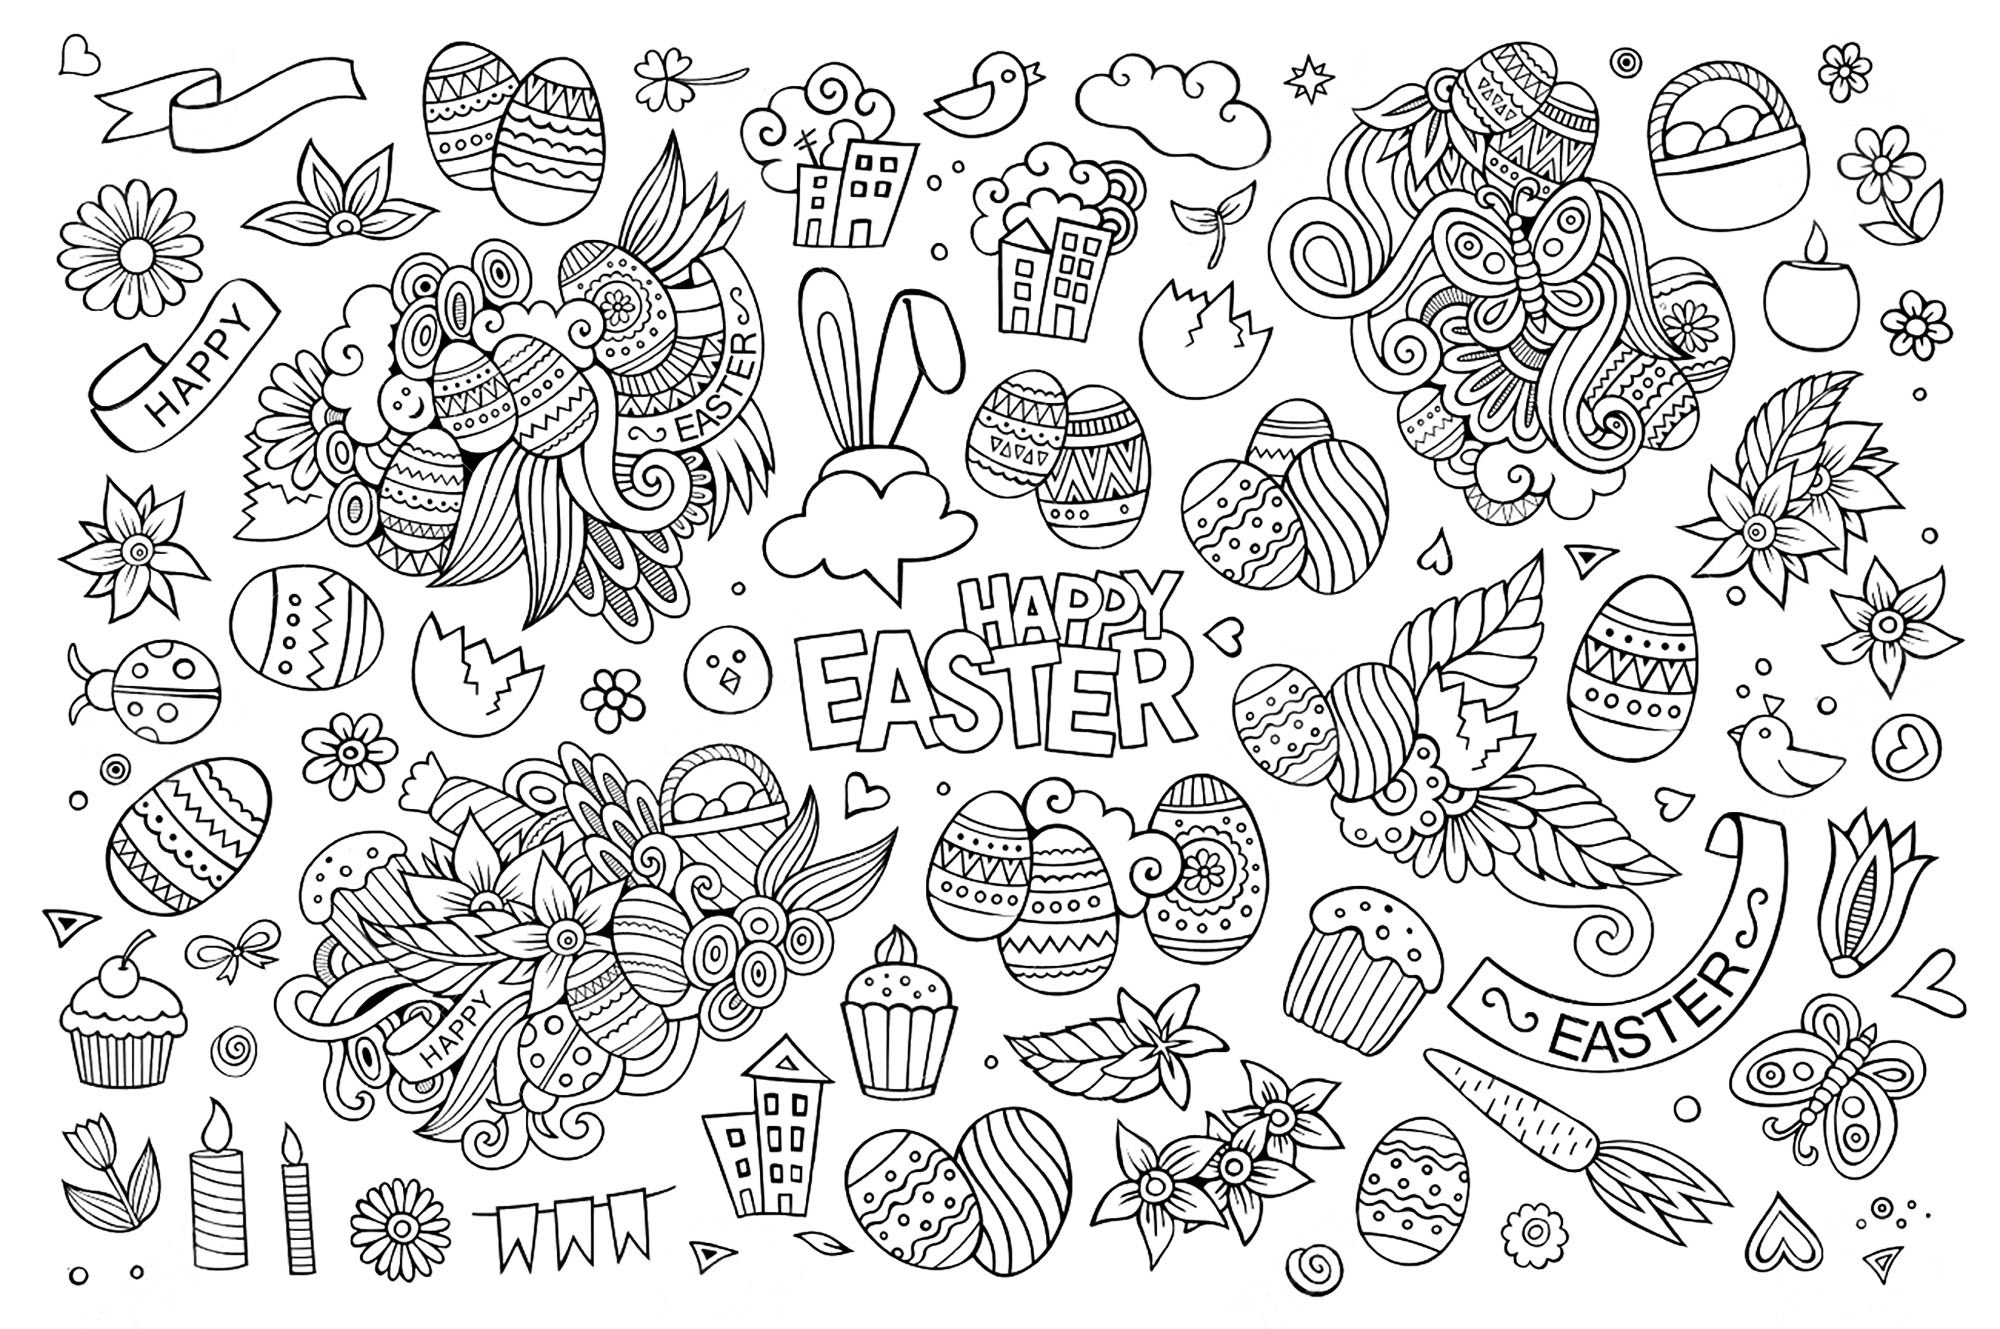 Jesus Resurrection Coloring Pages  to Print 14p - To print for your project